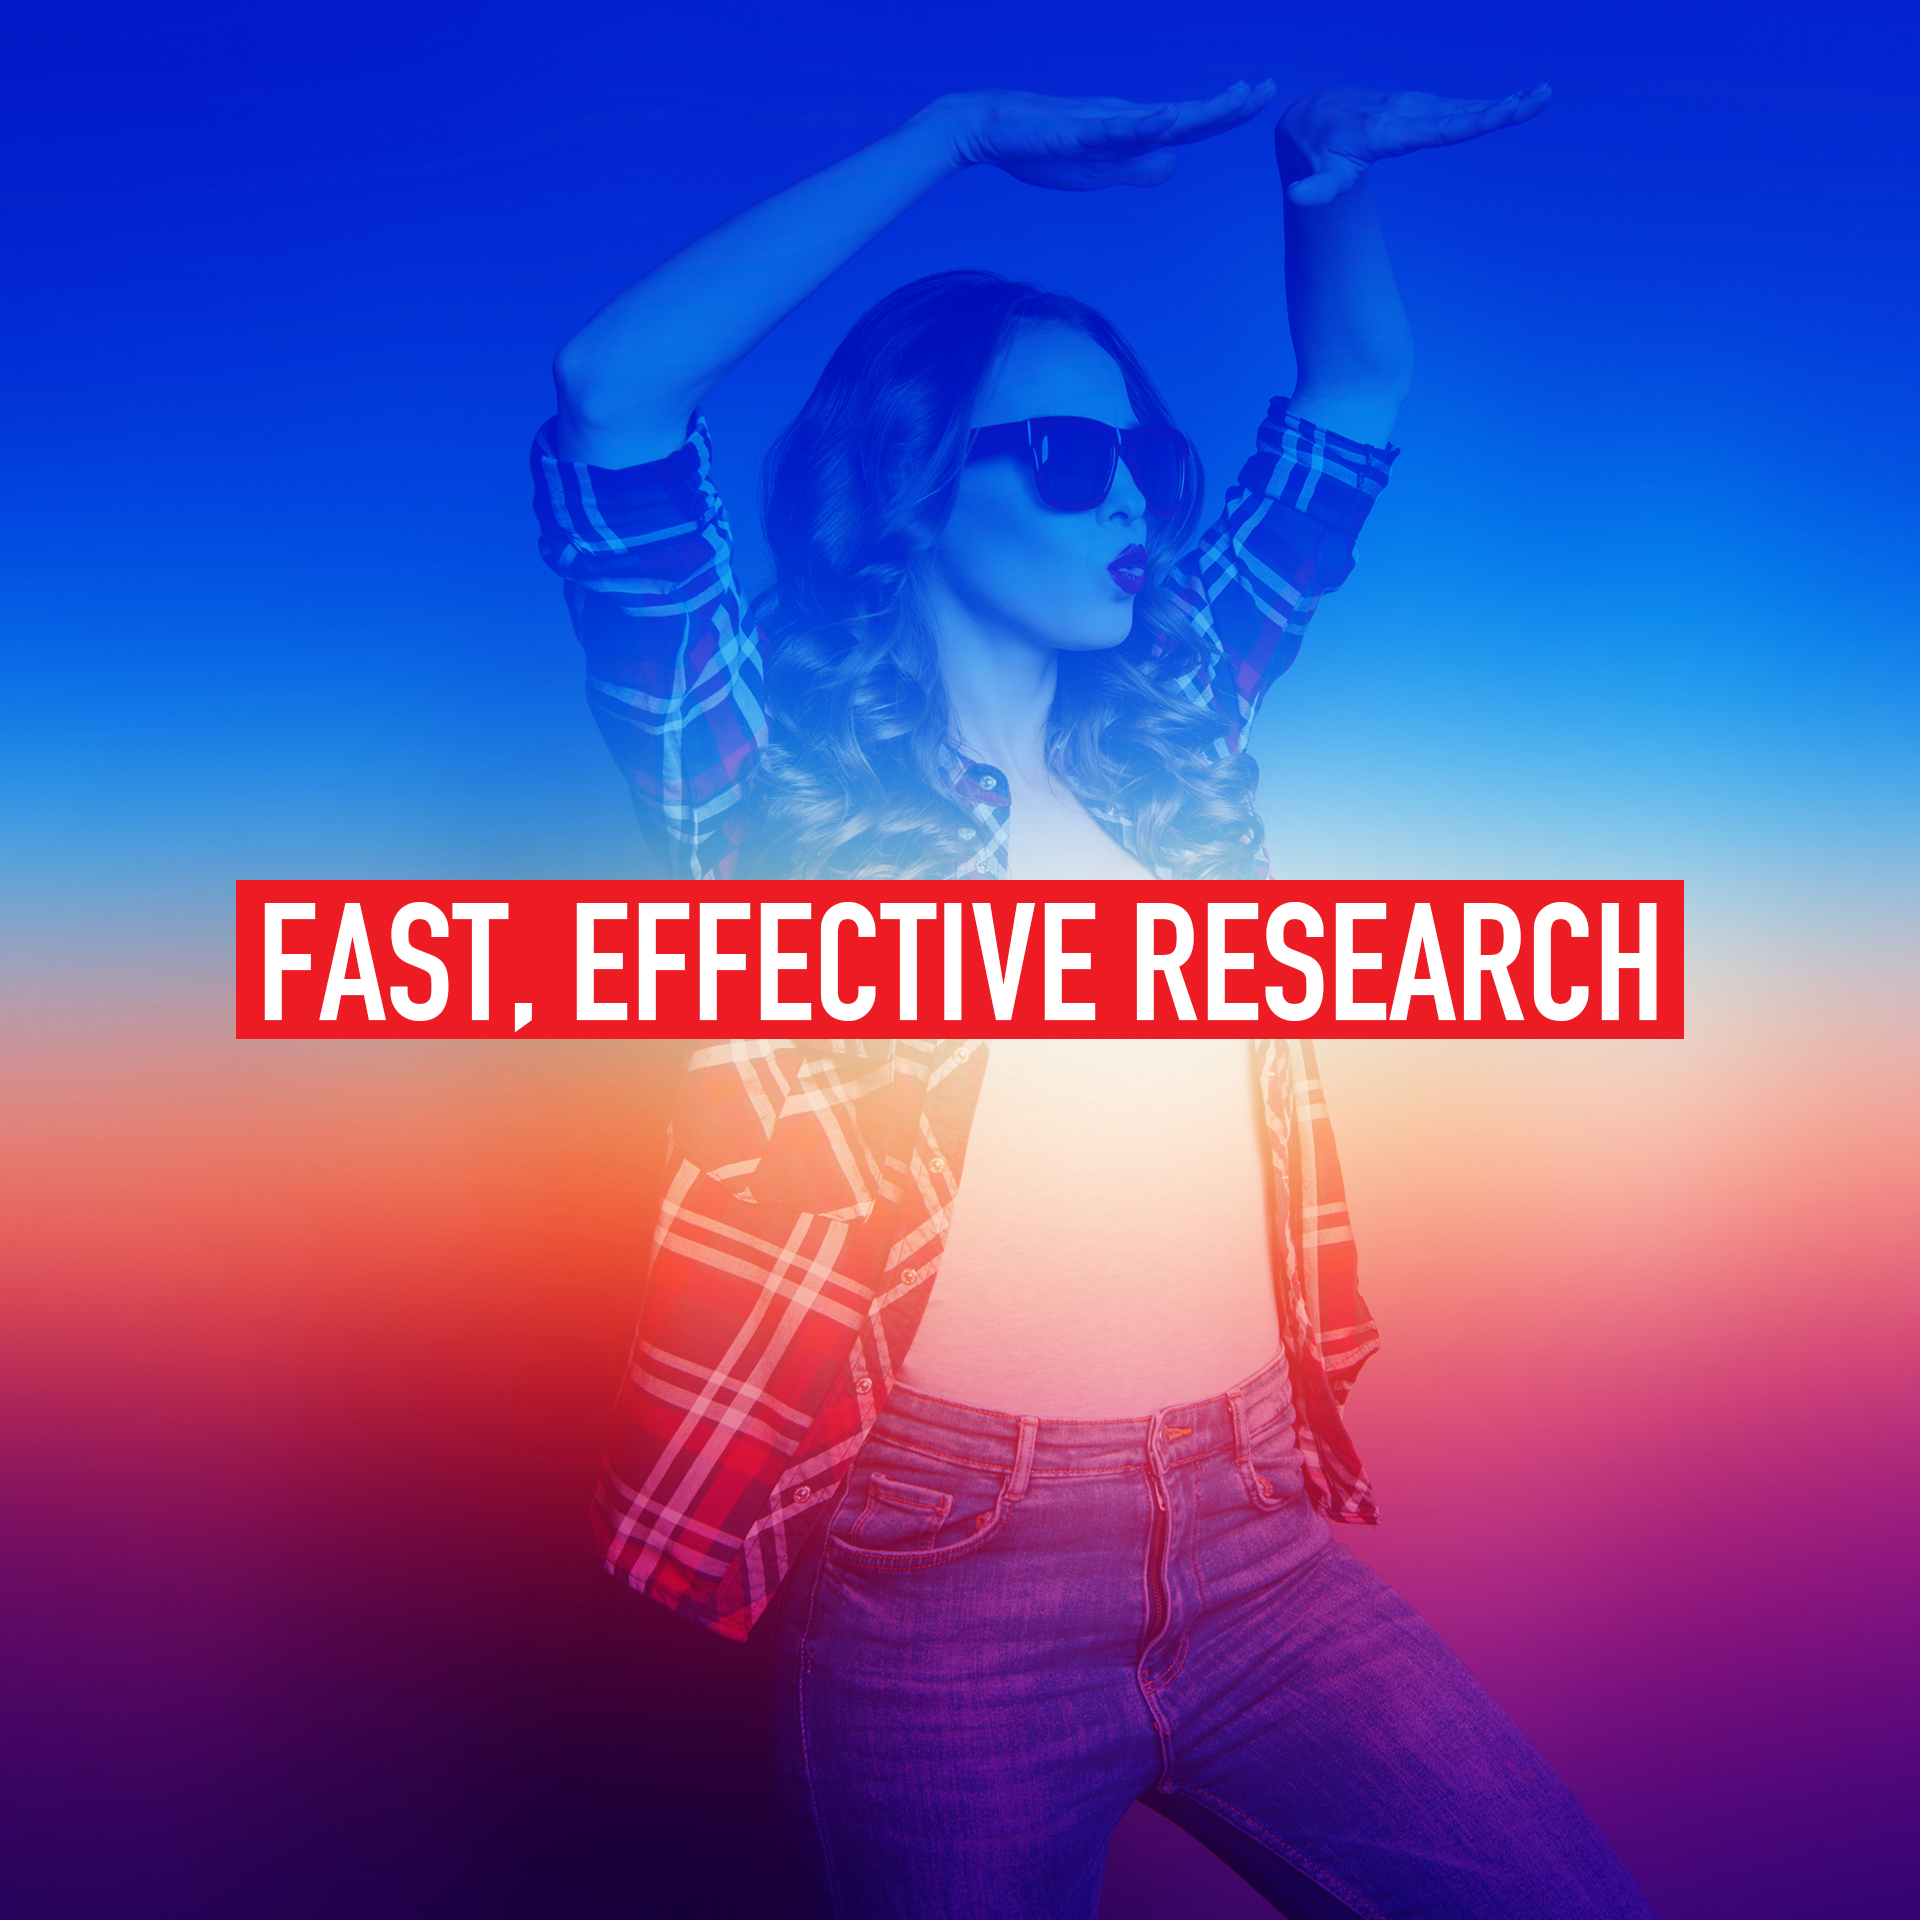 3.-OnePoll-research-page--Fast,-effective-research.jpg